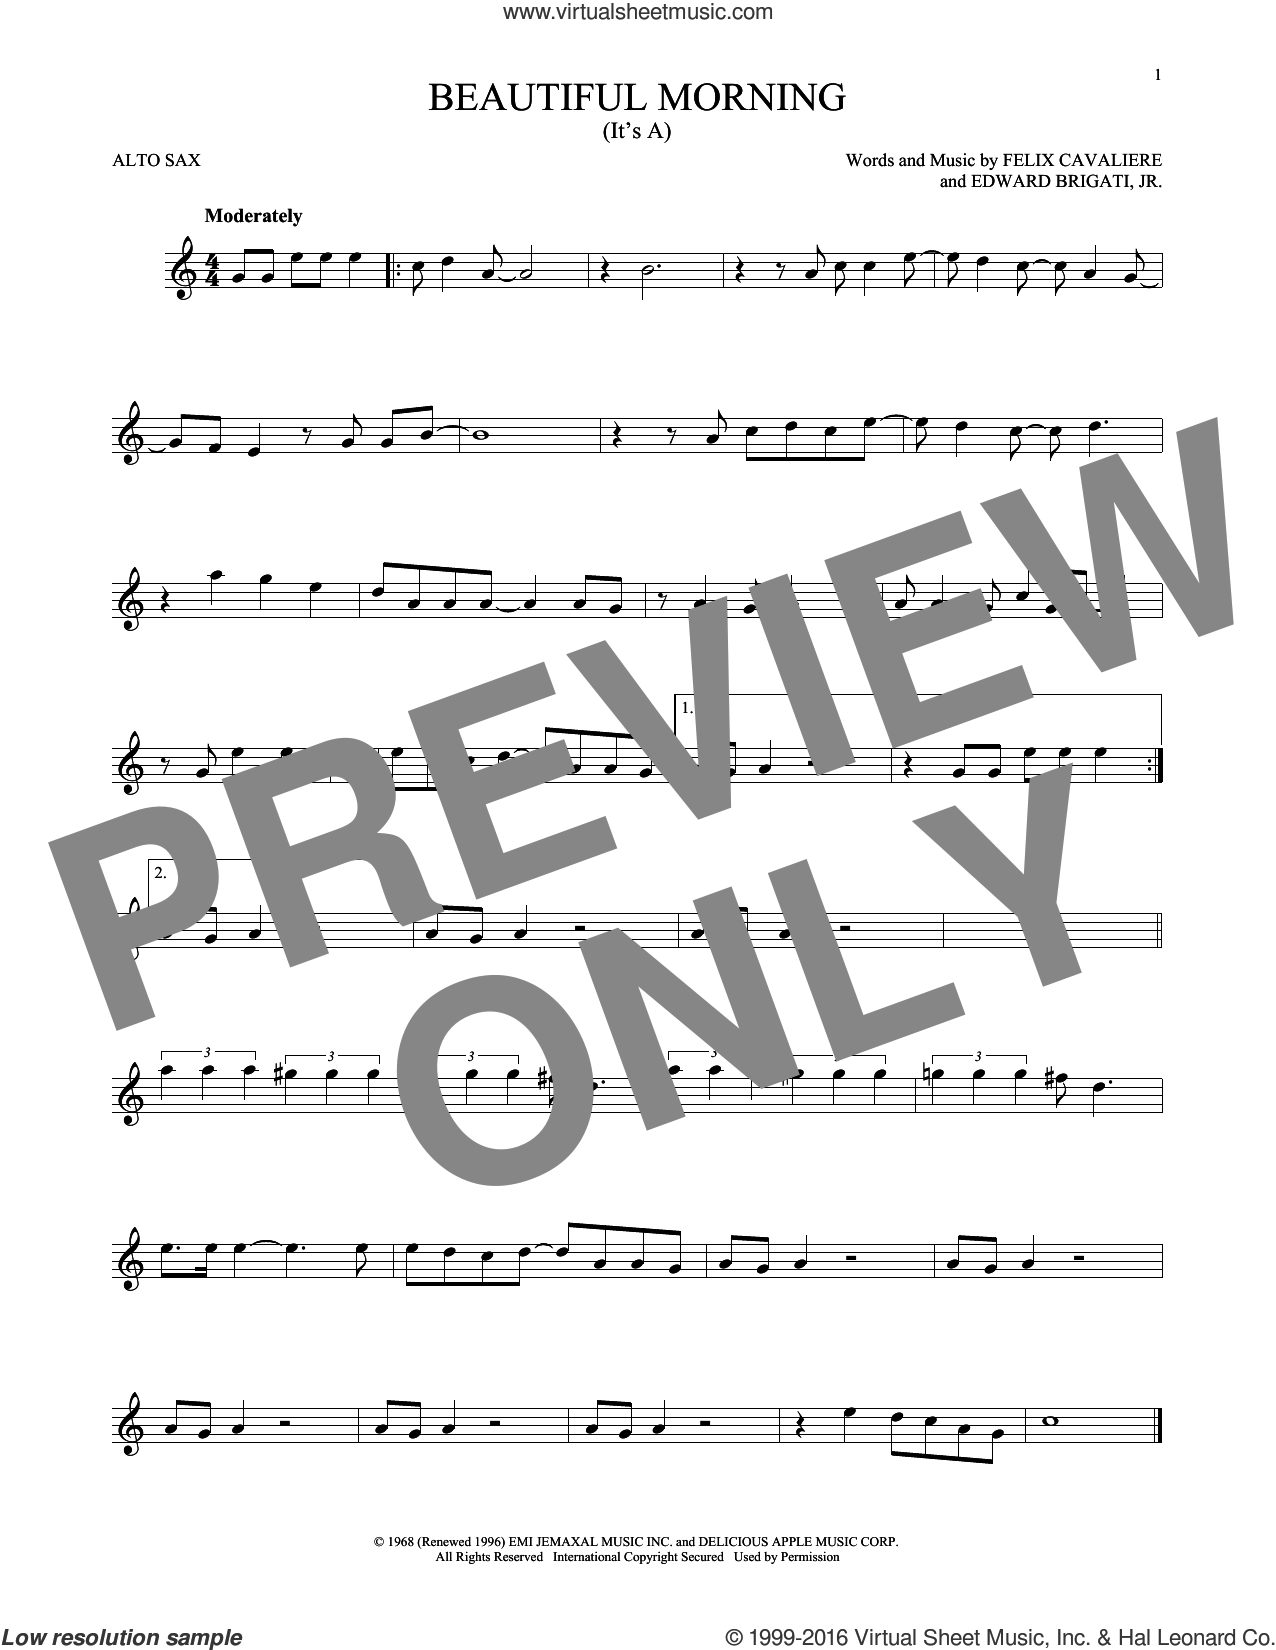 (It's A) Beautiful Morning sheet music for alto saxophone solo by The Rascals, Edward Brigati, Jr. and Felix Cavaliere, intermediate skill level